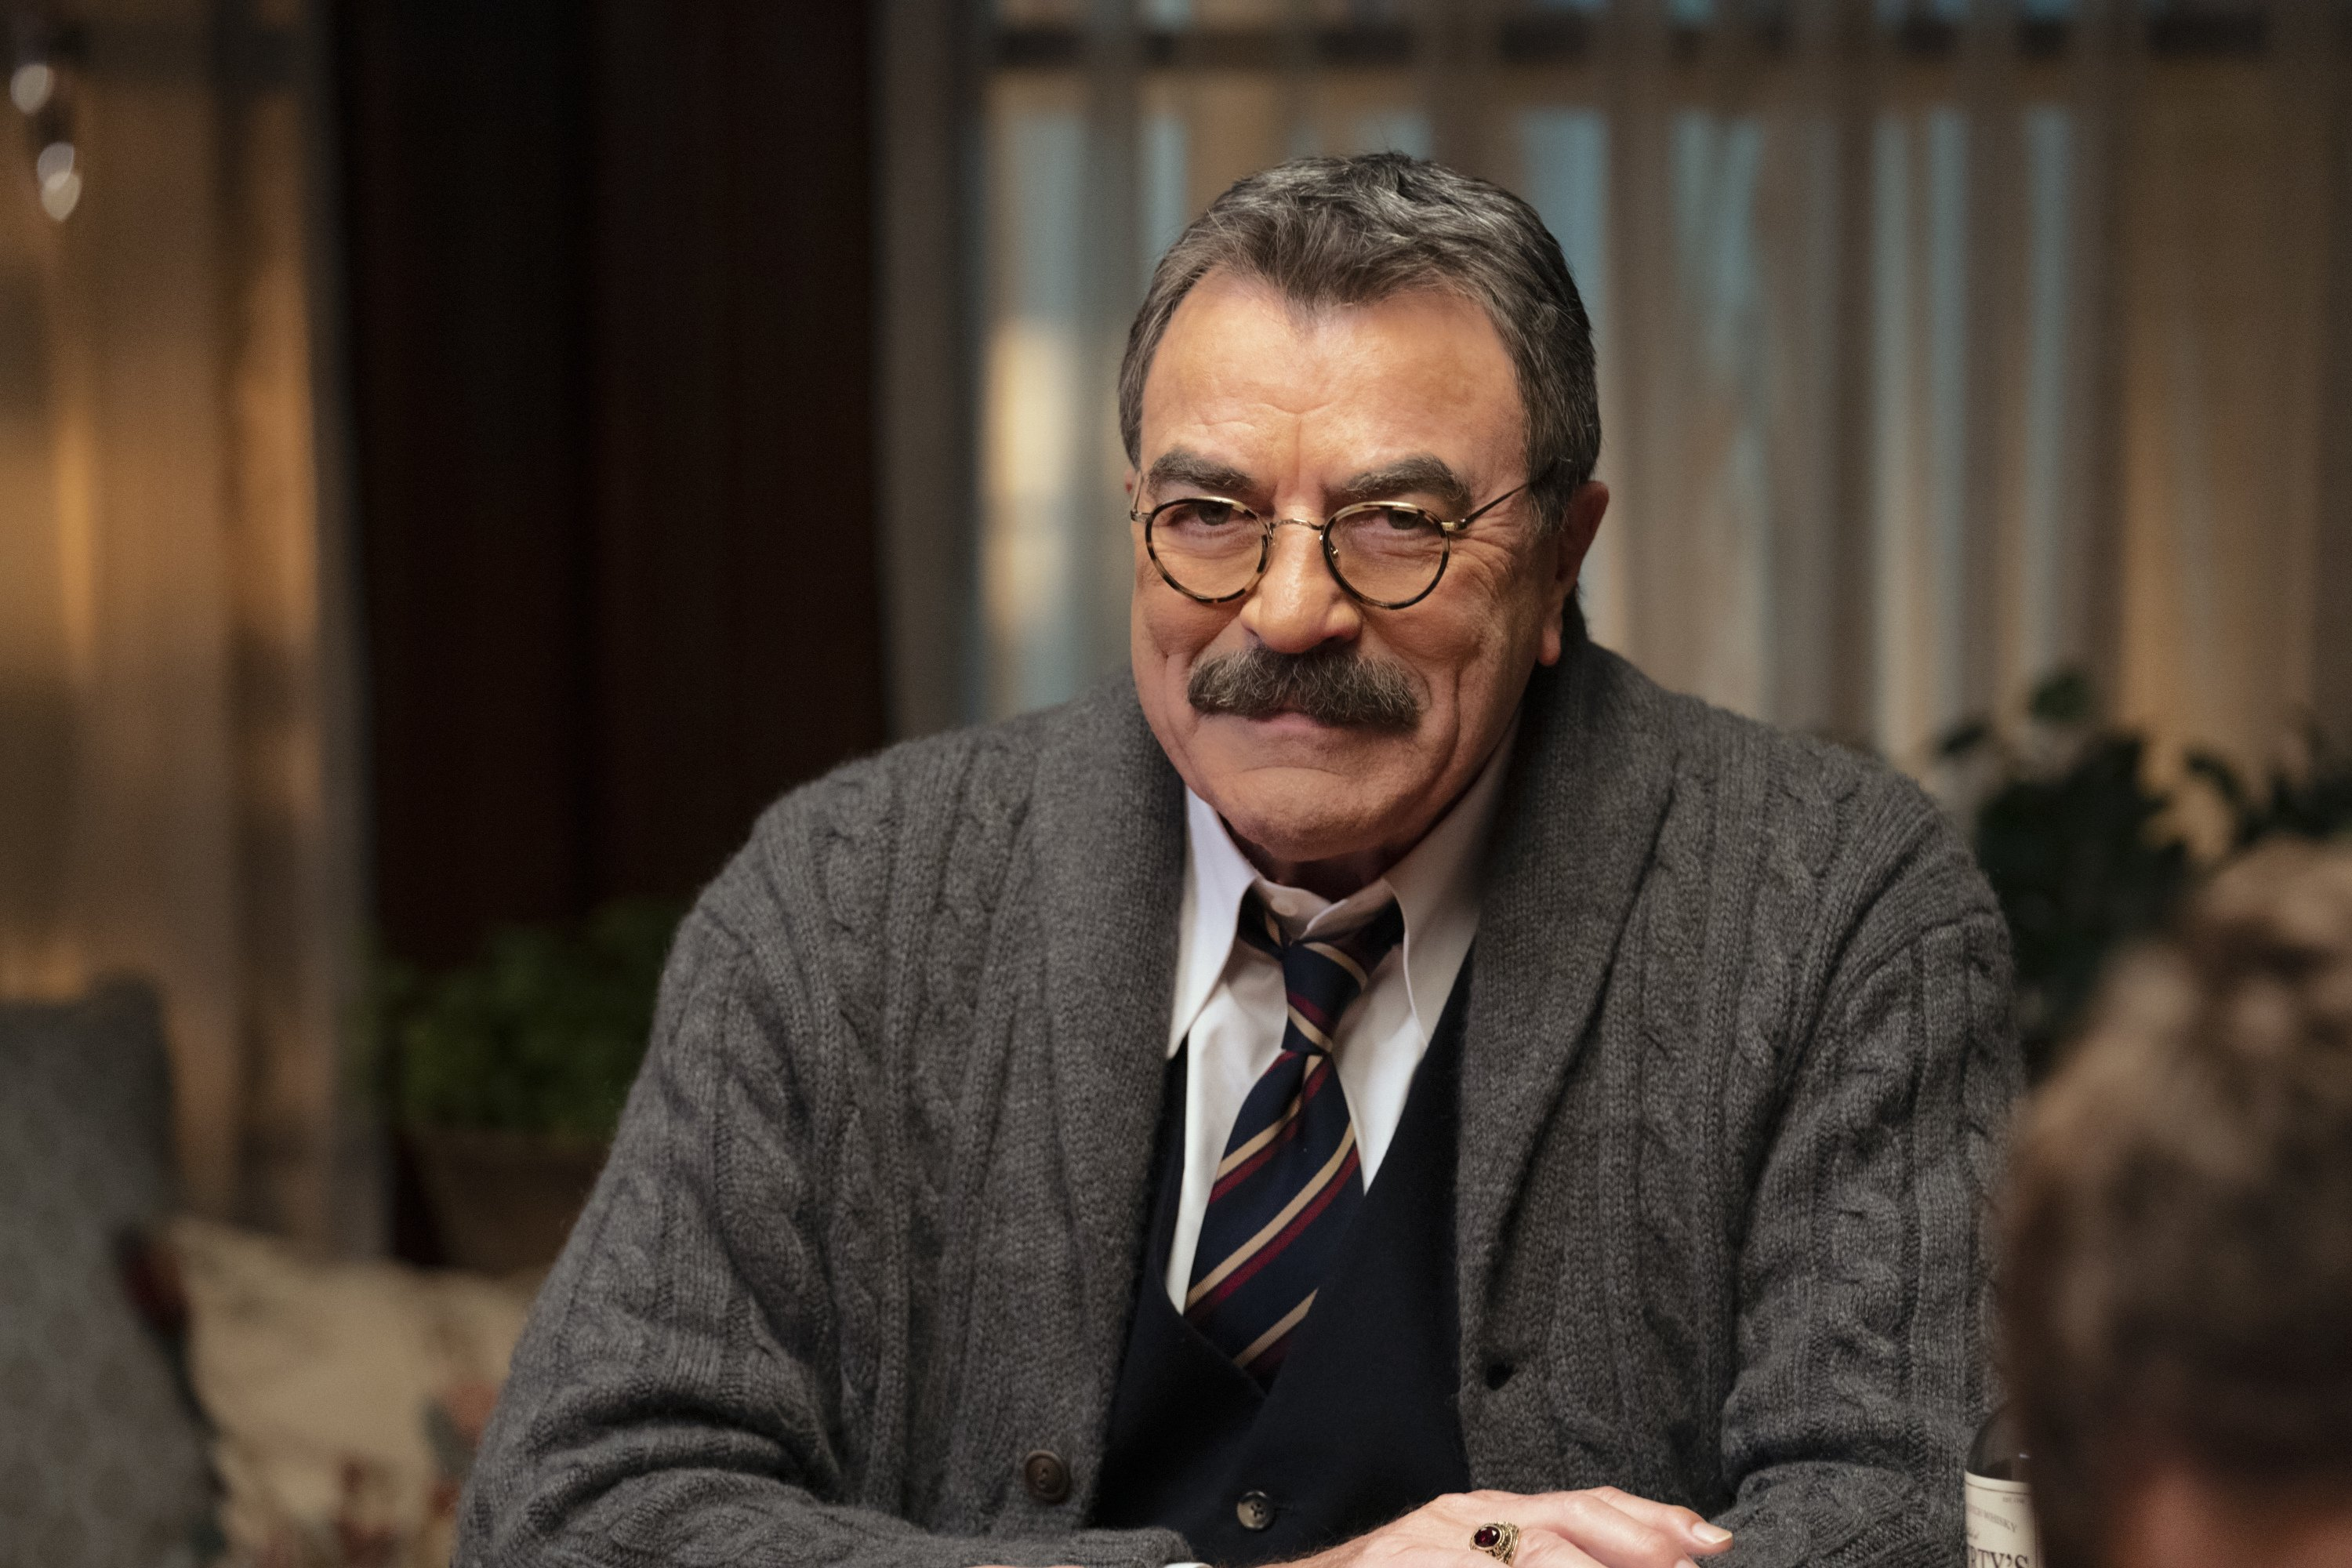 Tom Selleck stars as New York Police Commissioner Rank Regan in Blue Bloods, which premiered in 2010.   Photo: Getty Images.